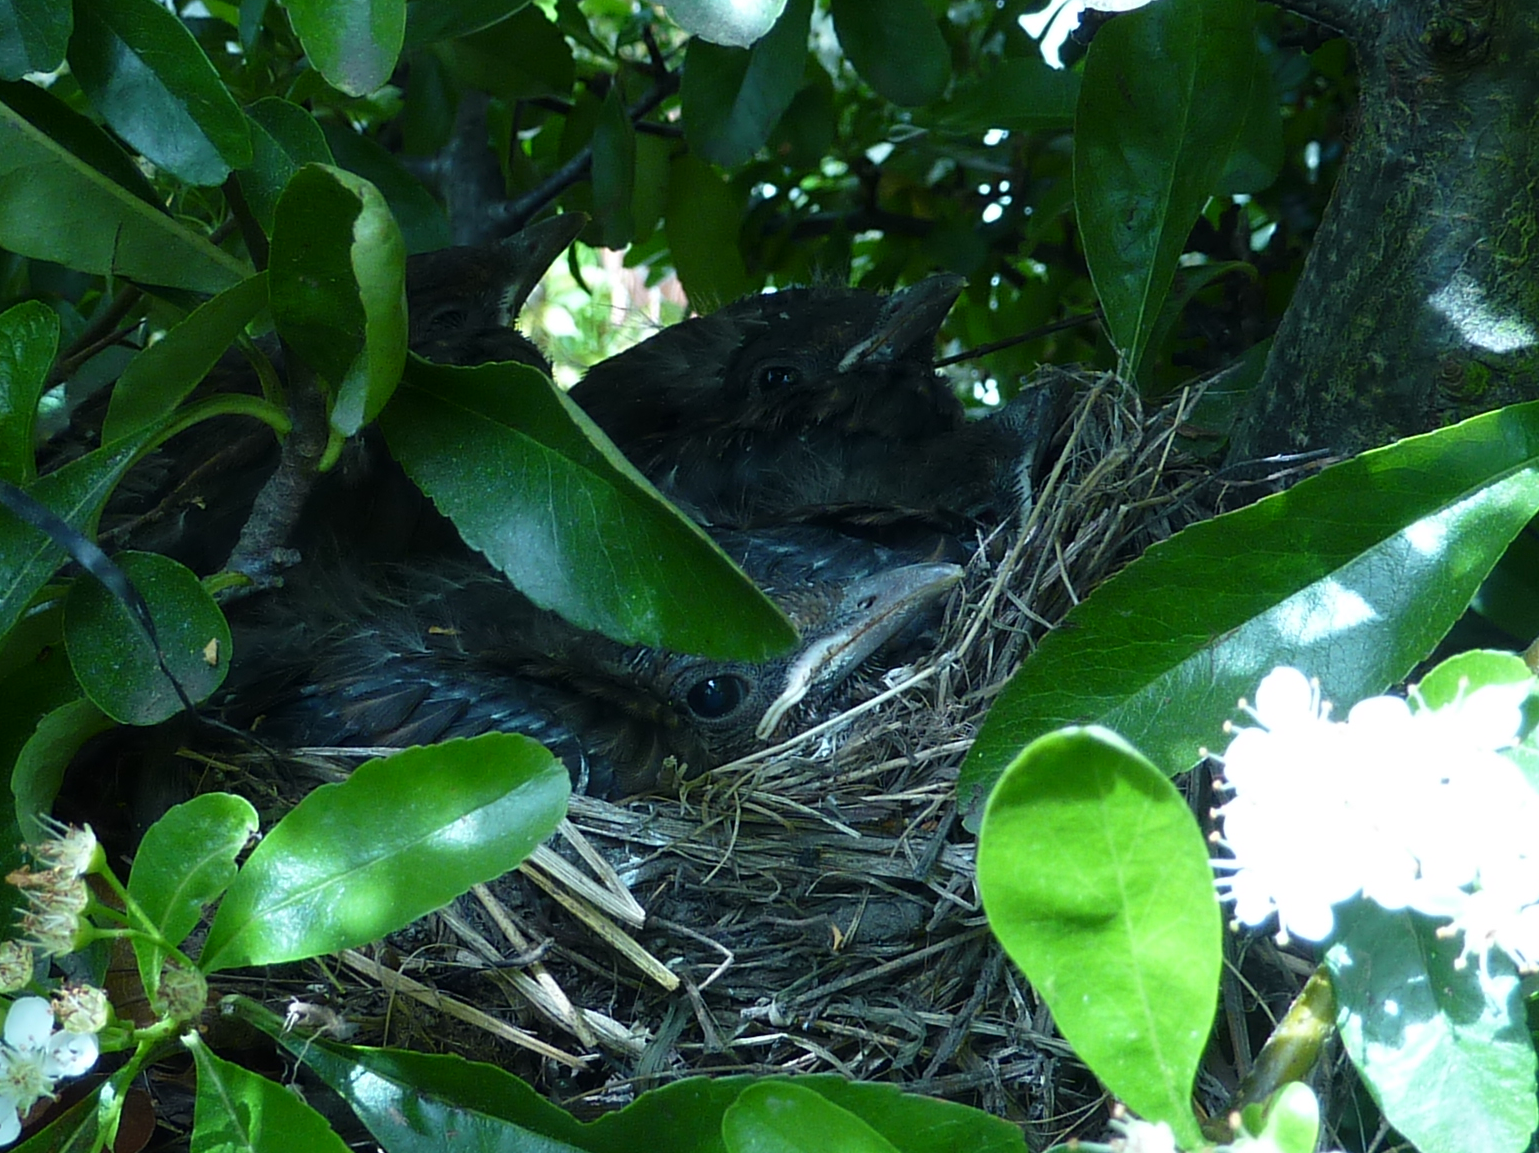 Photograph of blackbird chicks in a nest